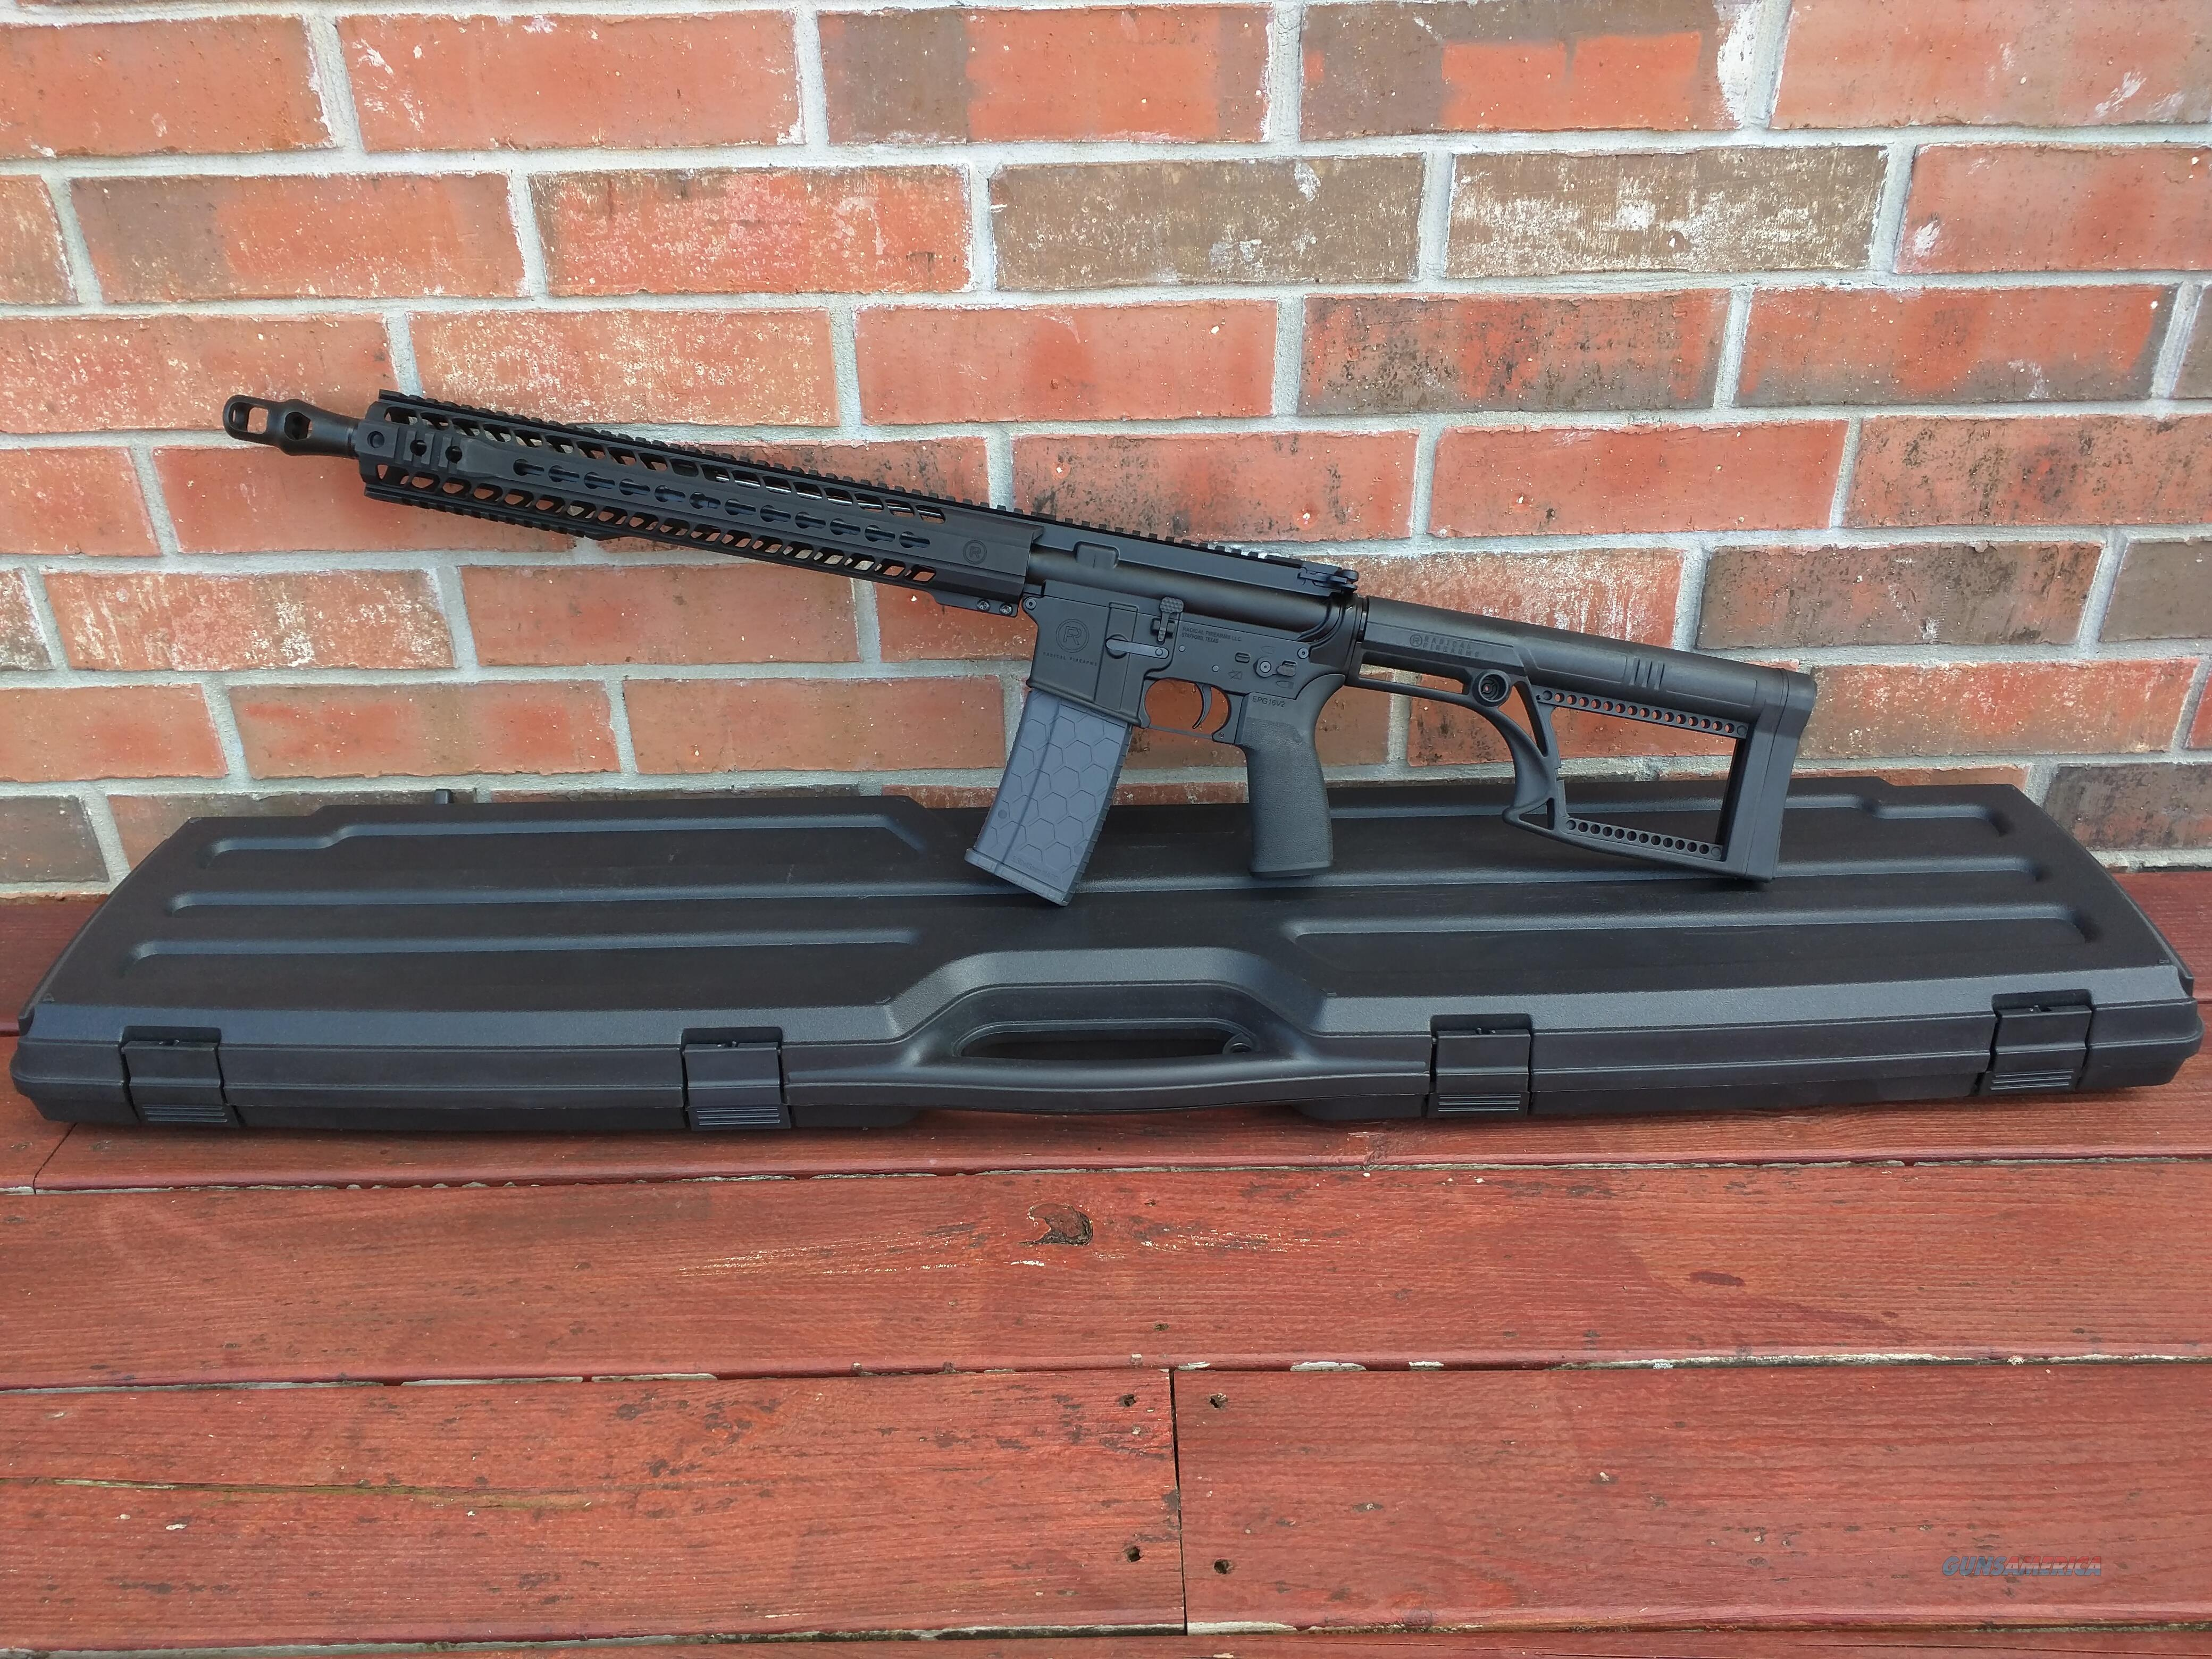 "Radical Firearms AR15 AR 15 458 Socom 16"" with Muzzle Brake, NIB with Hard Case, Alum. 15"" Handguard Rails For Optics ECT FREE LAYAWAY  Guns > Rifles > AR-15 Rifles - Small Manufacturers > Complete Rifle"